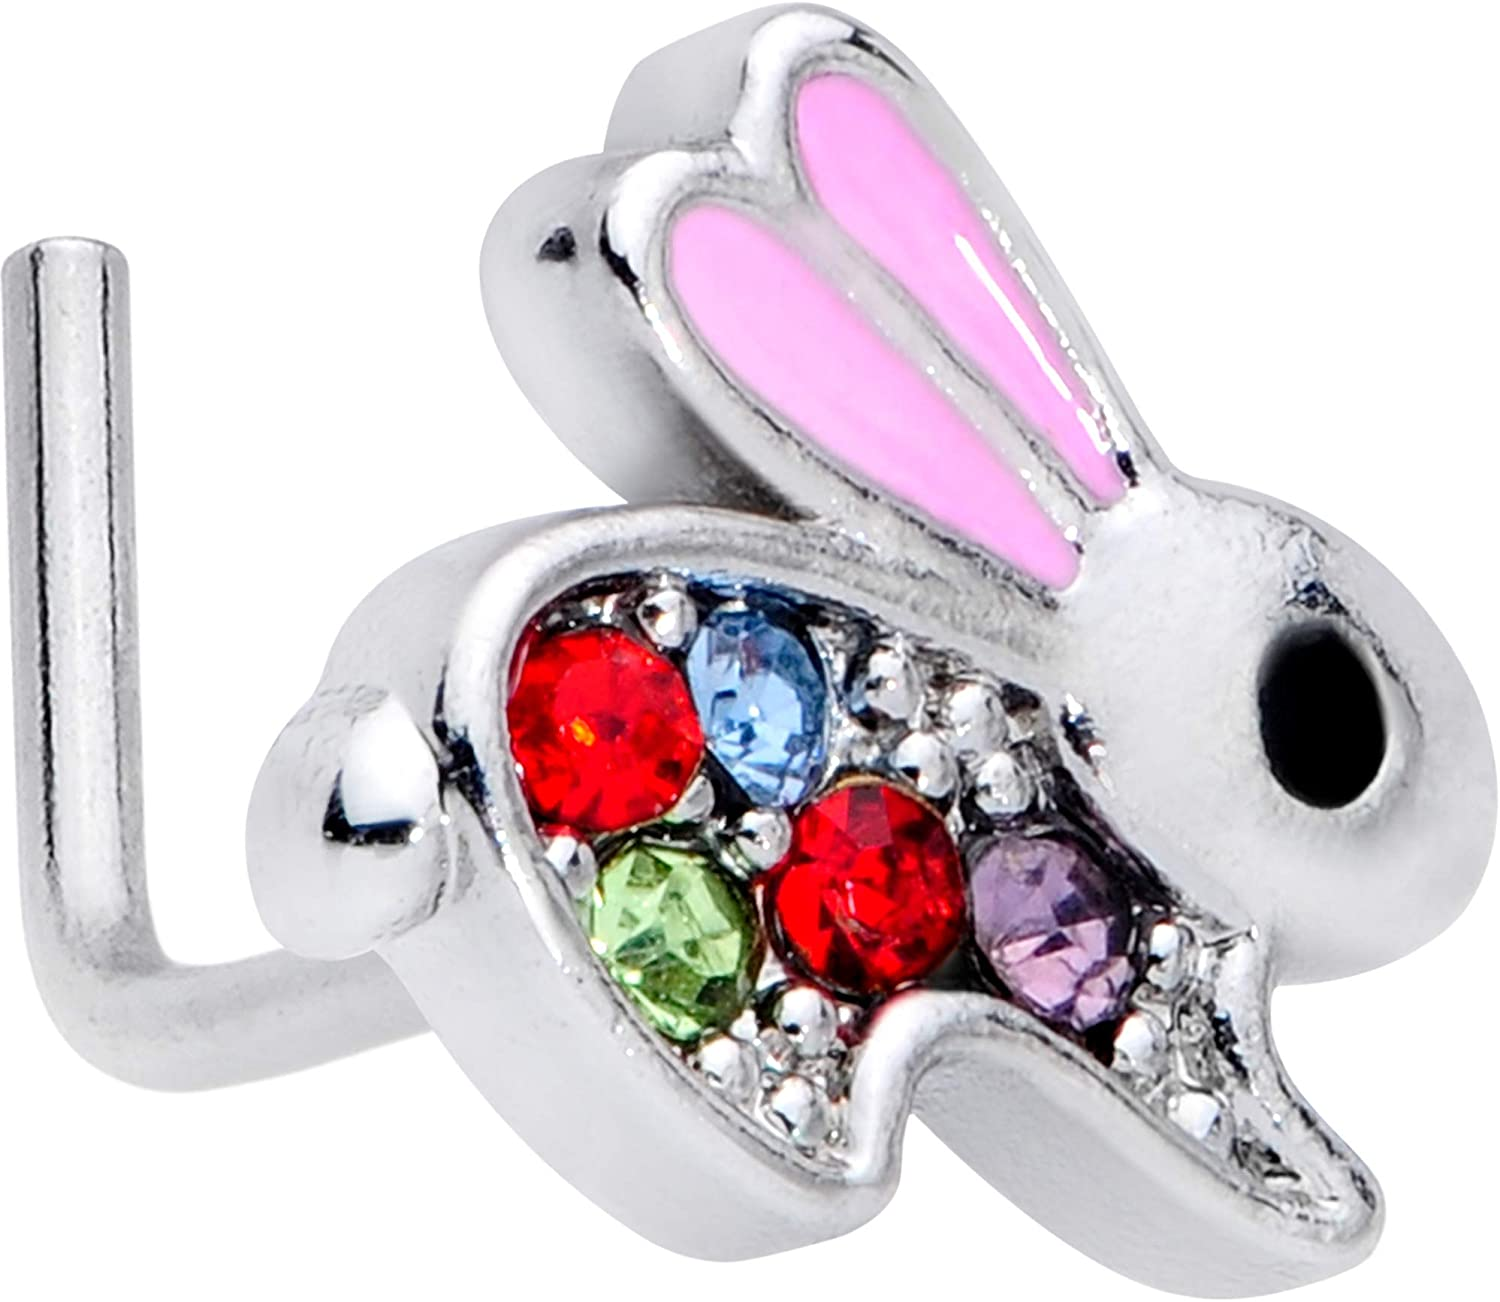 Body Candy Womens 20G Stainless Steel L Shaped Nose Ring Bunny Rabbit Nose Stud Body Piercing Jewelry 1/4